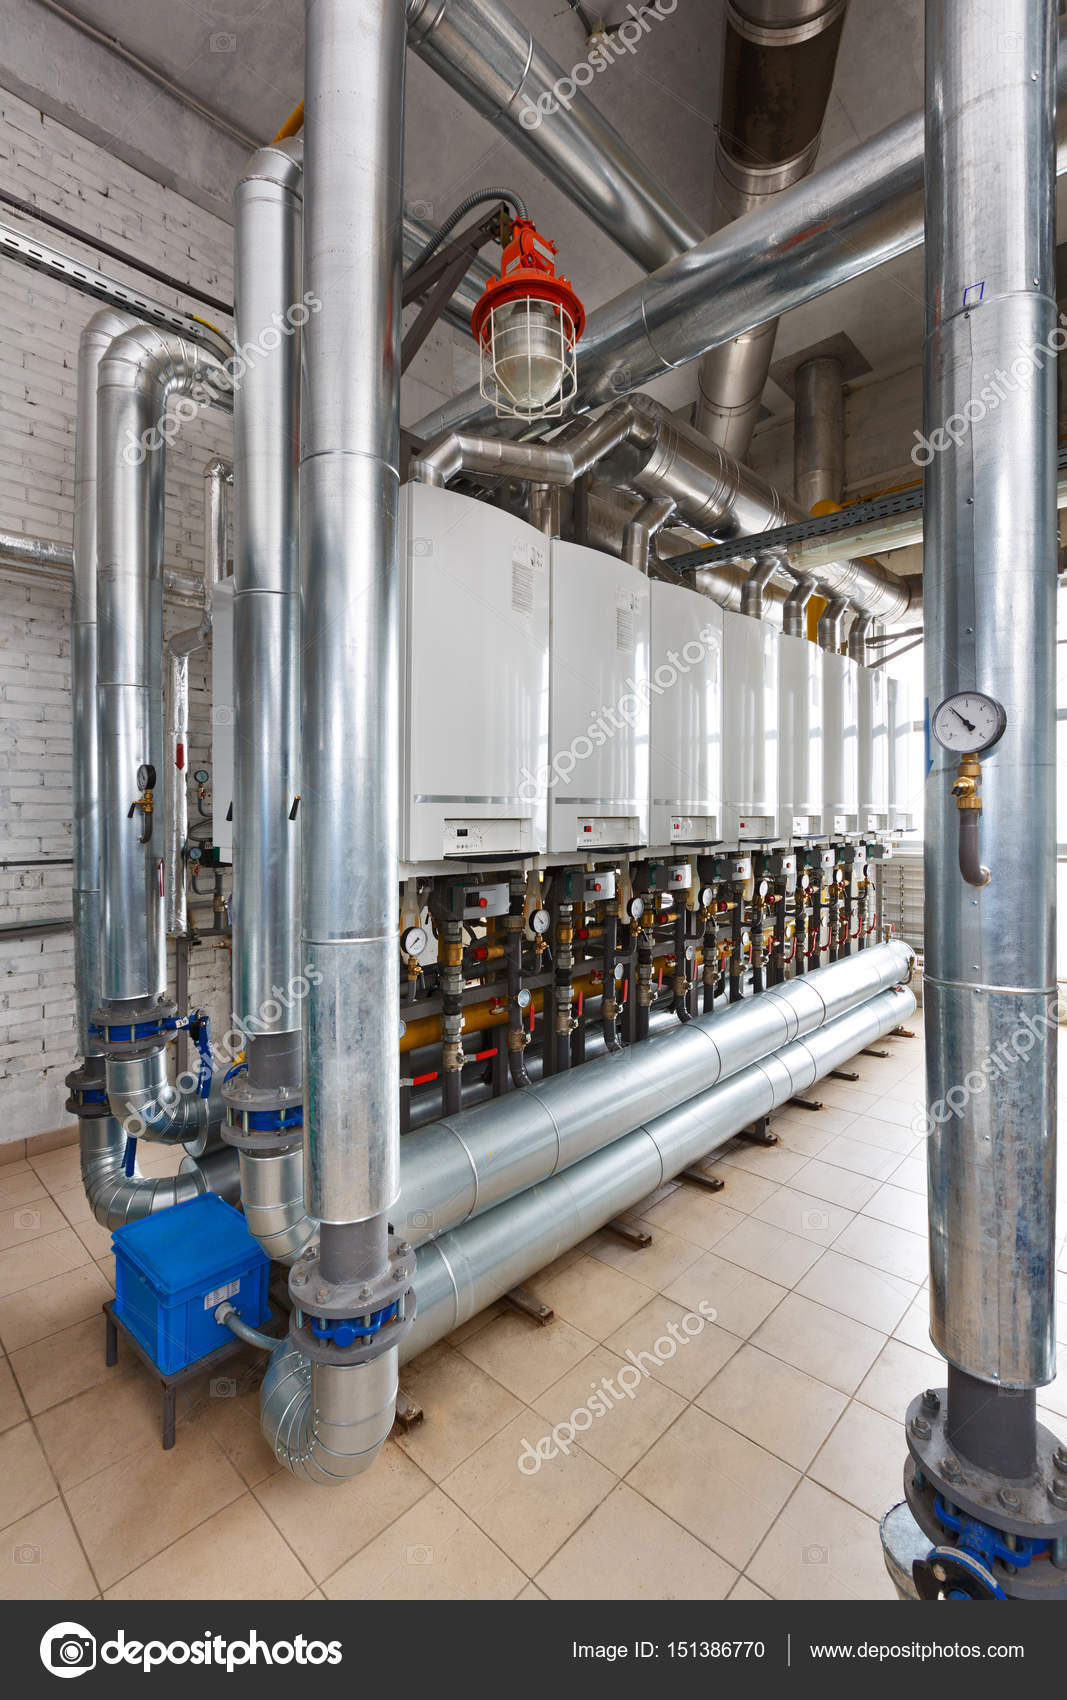 Interior of industrial, gas boiler house with a lot of boilers a ...